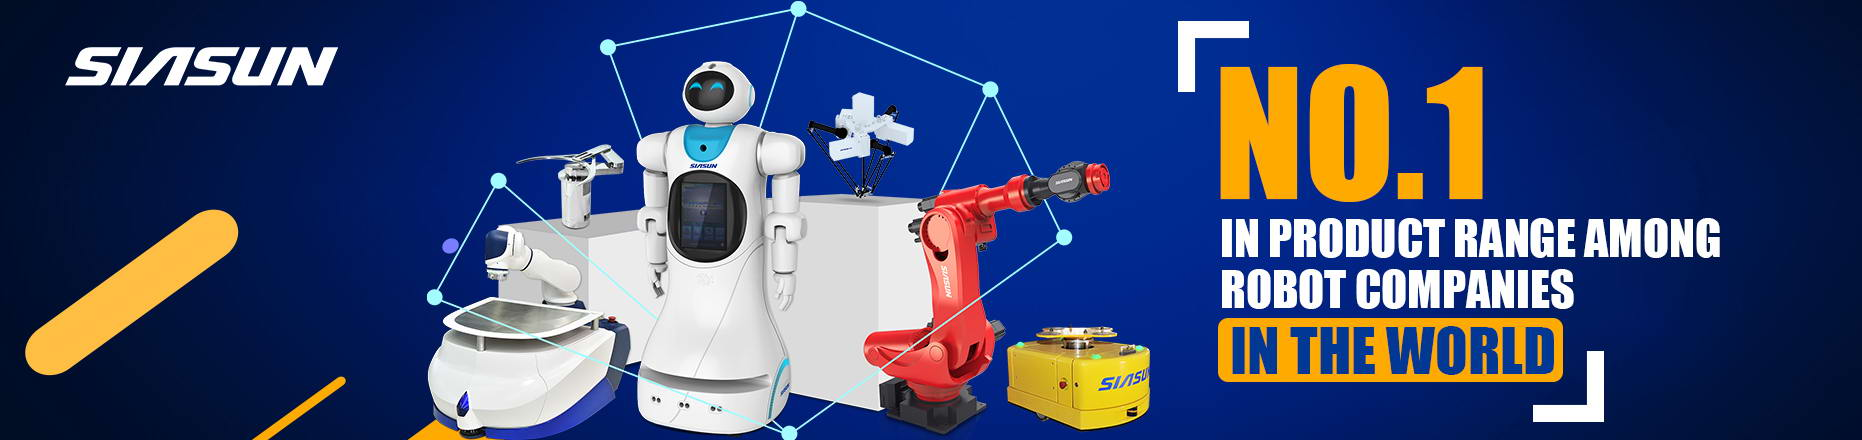 in product range among robot companies in the world